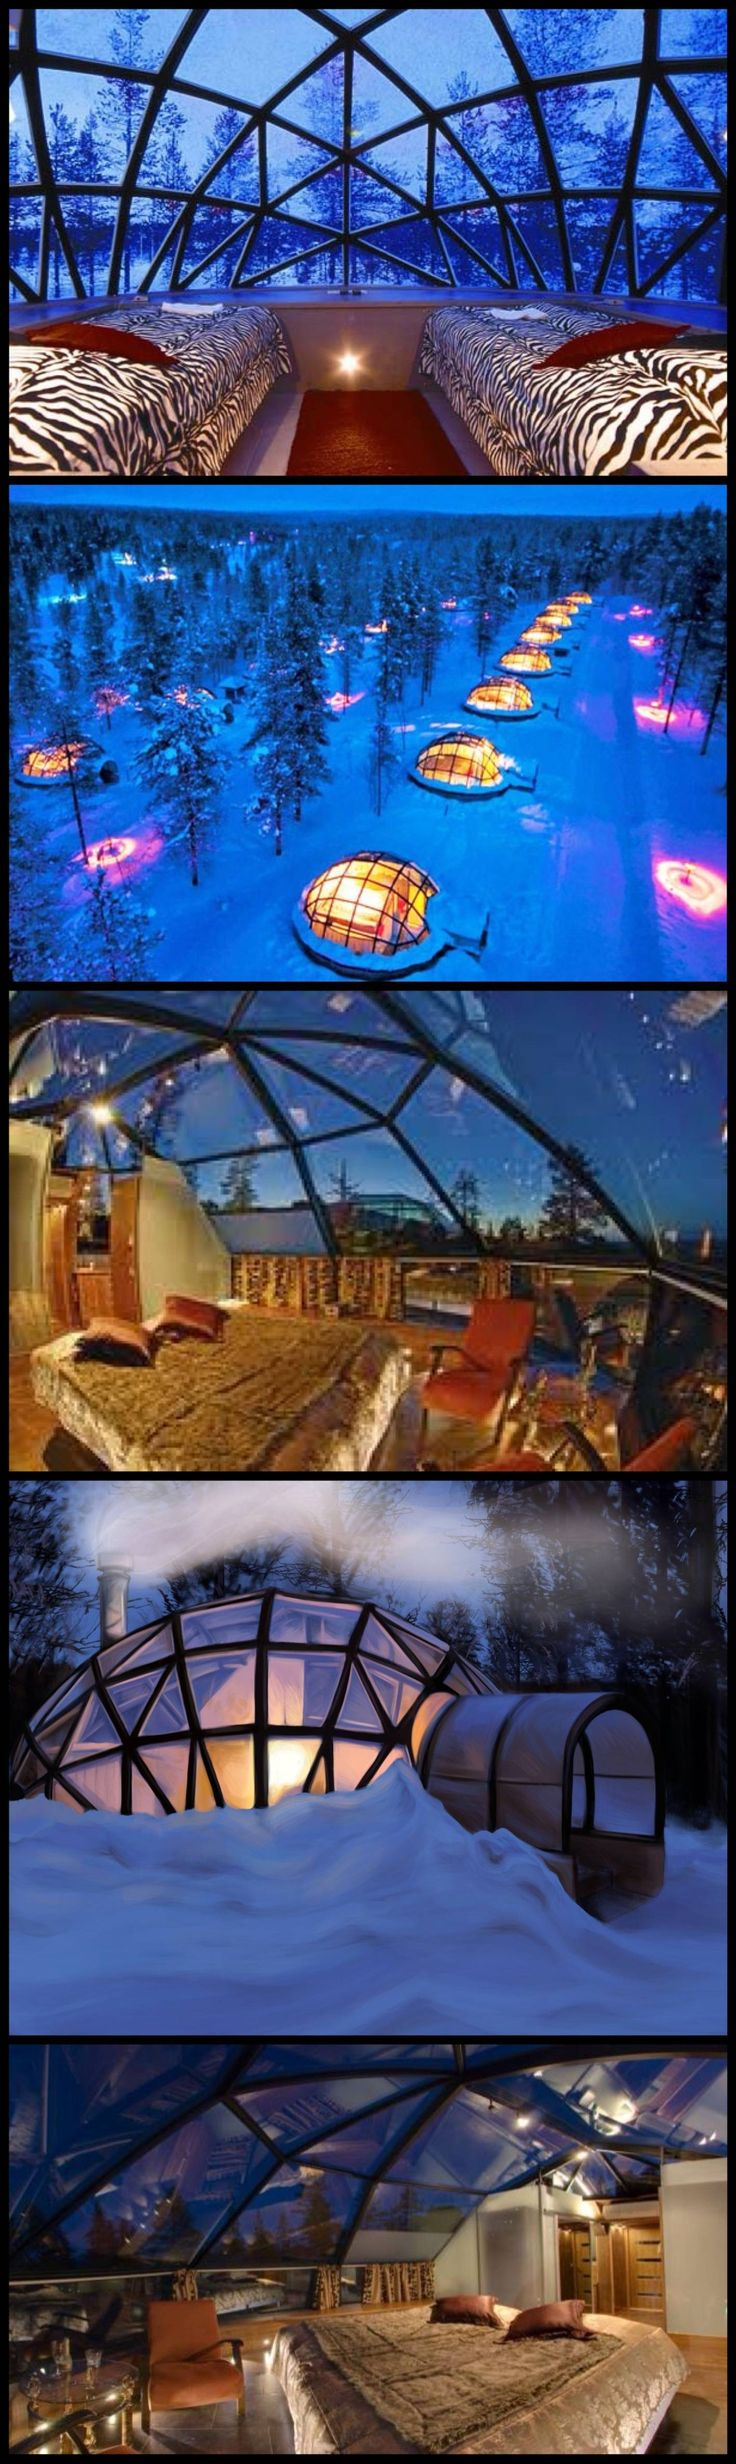 Kakslauttanen Arctic Resort - The famous Glass Igloos in Finland are definitly one of the most romantic Hotels of the world. Sleep under the Stars and in one of the world's best places for watching the Northern Lights.